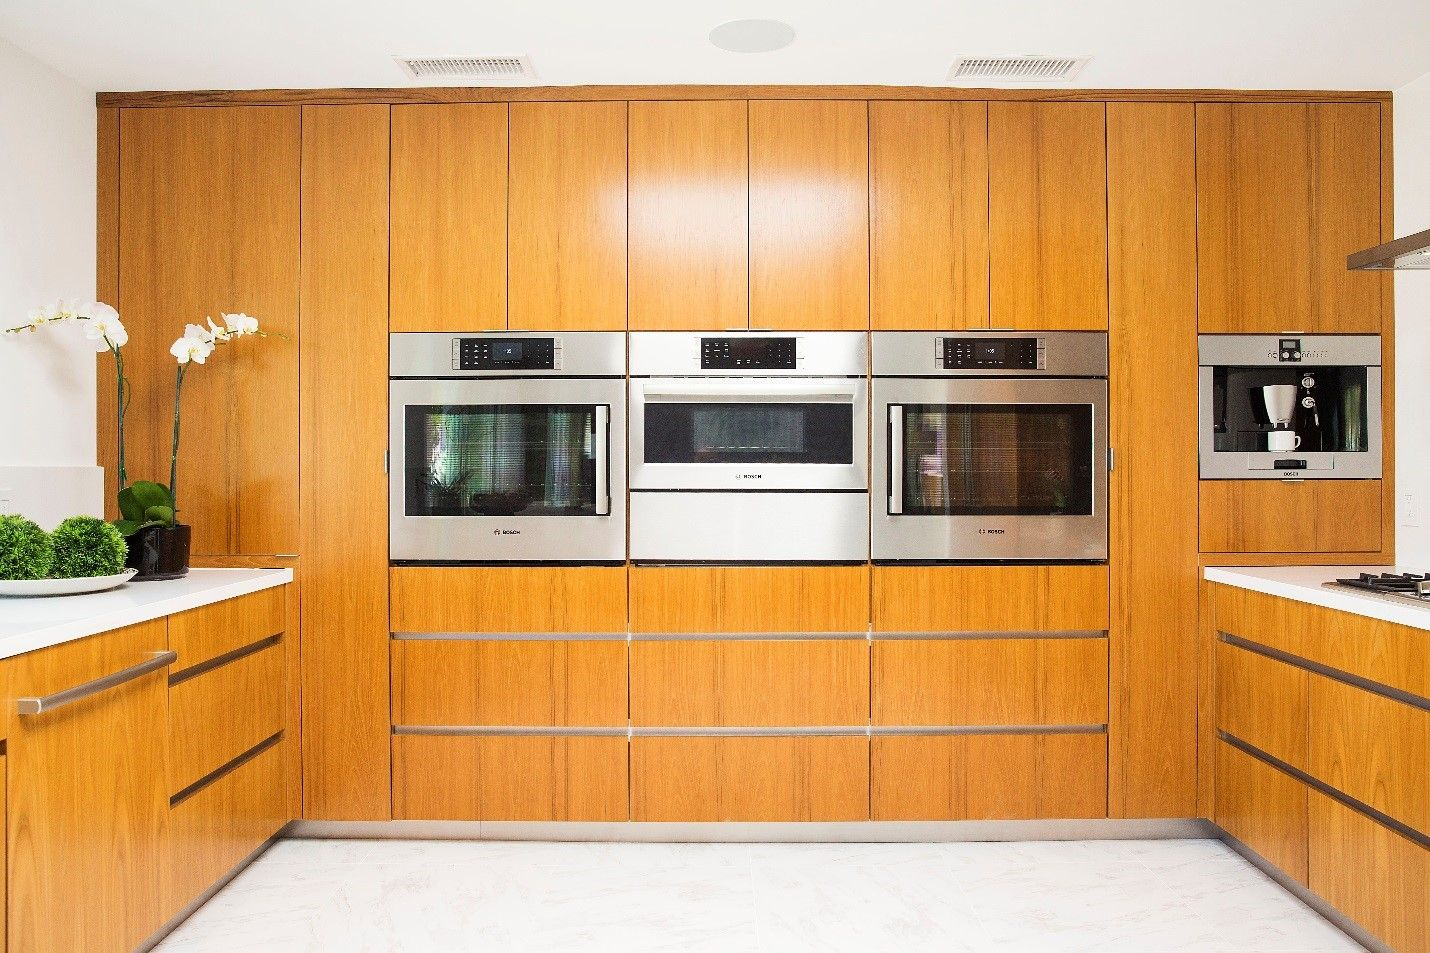 Bosch Horizontal Side Opening Wall Oven Wall Oven Kitchen Inspiration Design Wall Oven Kitchen